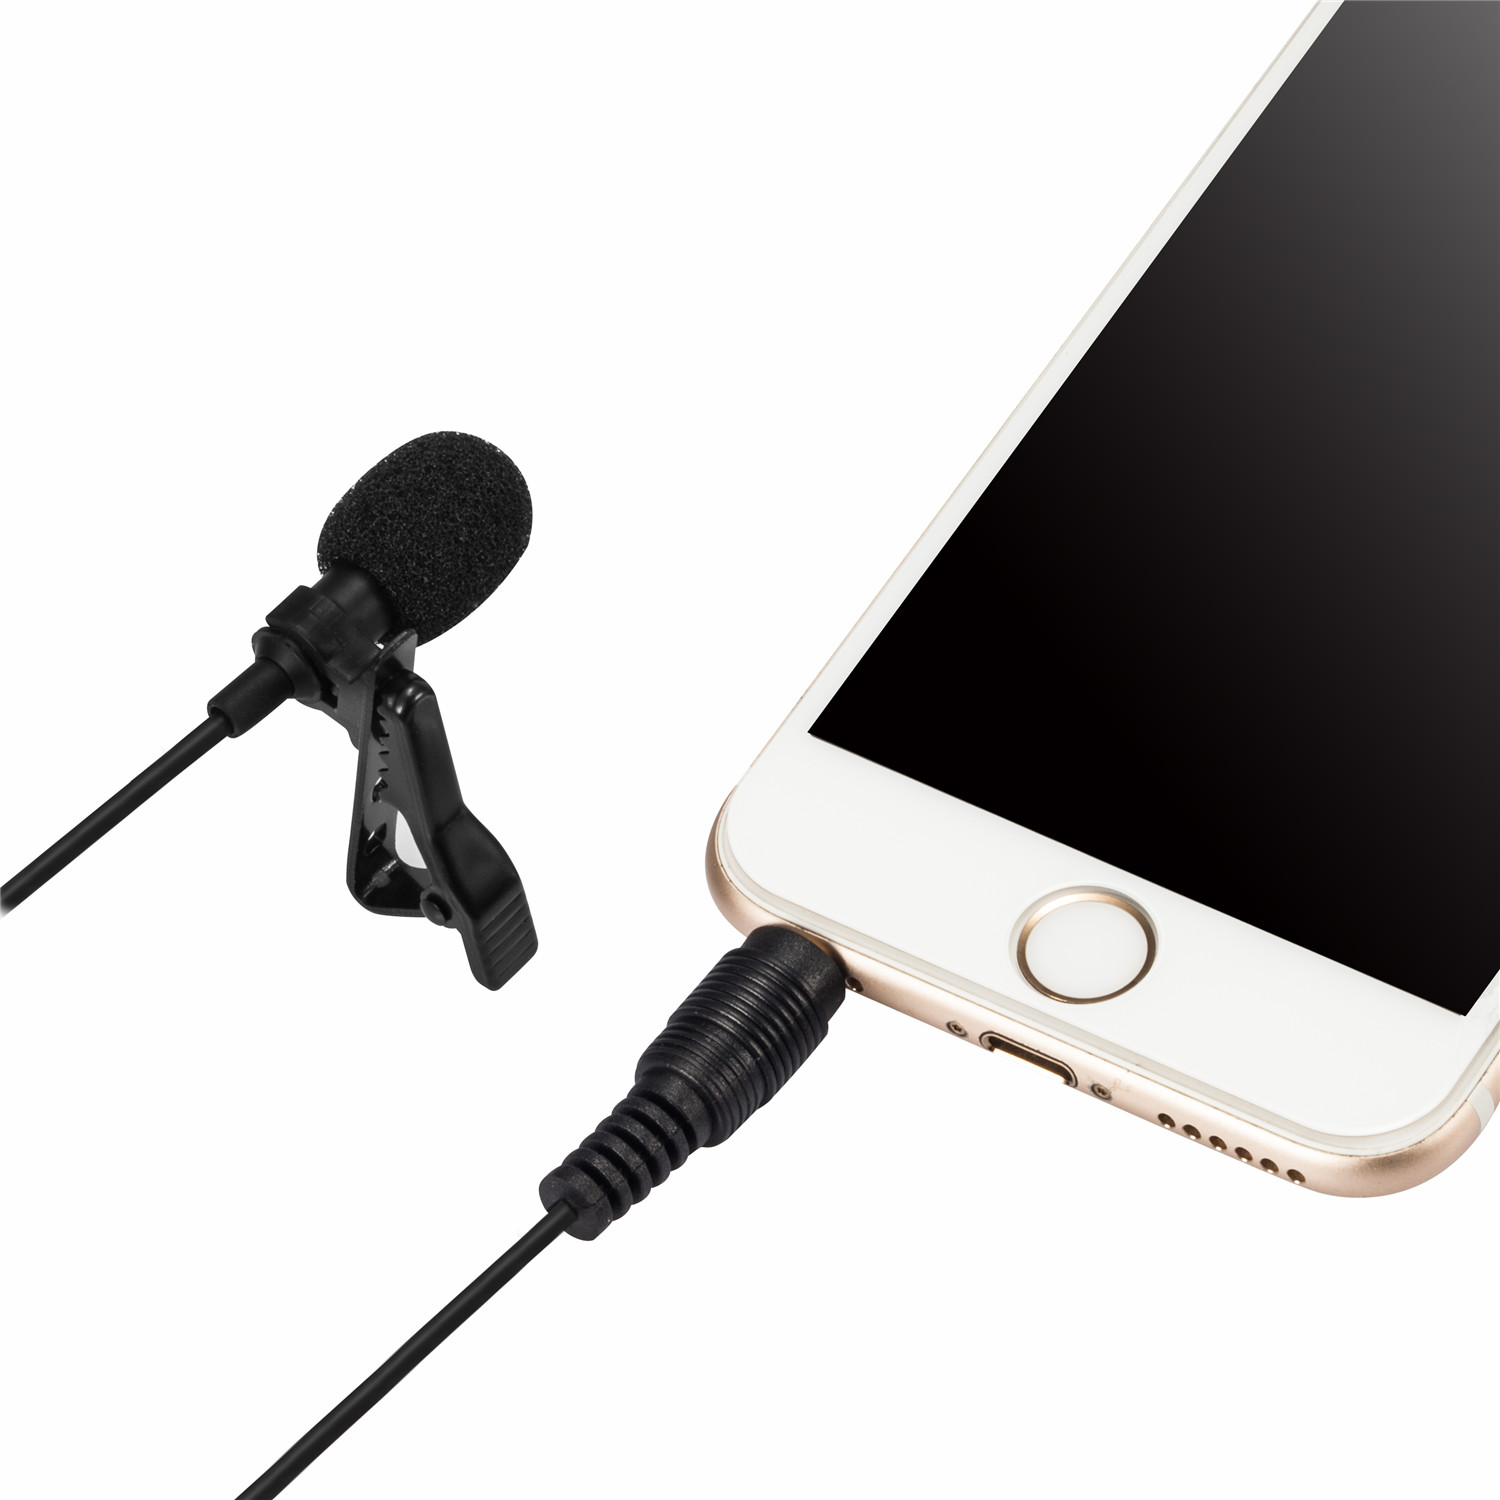 AGPtEK Lavalier Lapel Mic Clip-on Omnidirectional Condenser Microphone for iPhone, iPad, iPod Touch, Sony, LG, Blackberry and other Android Devices